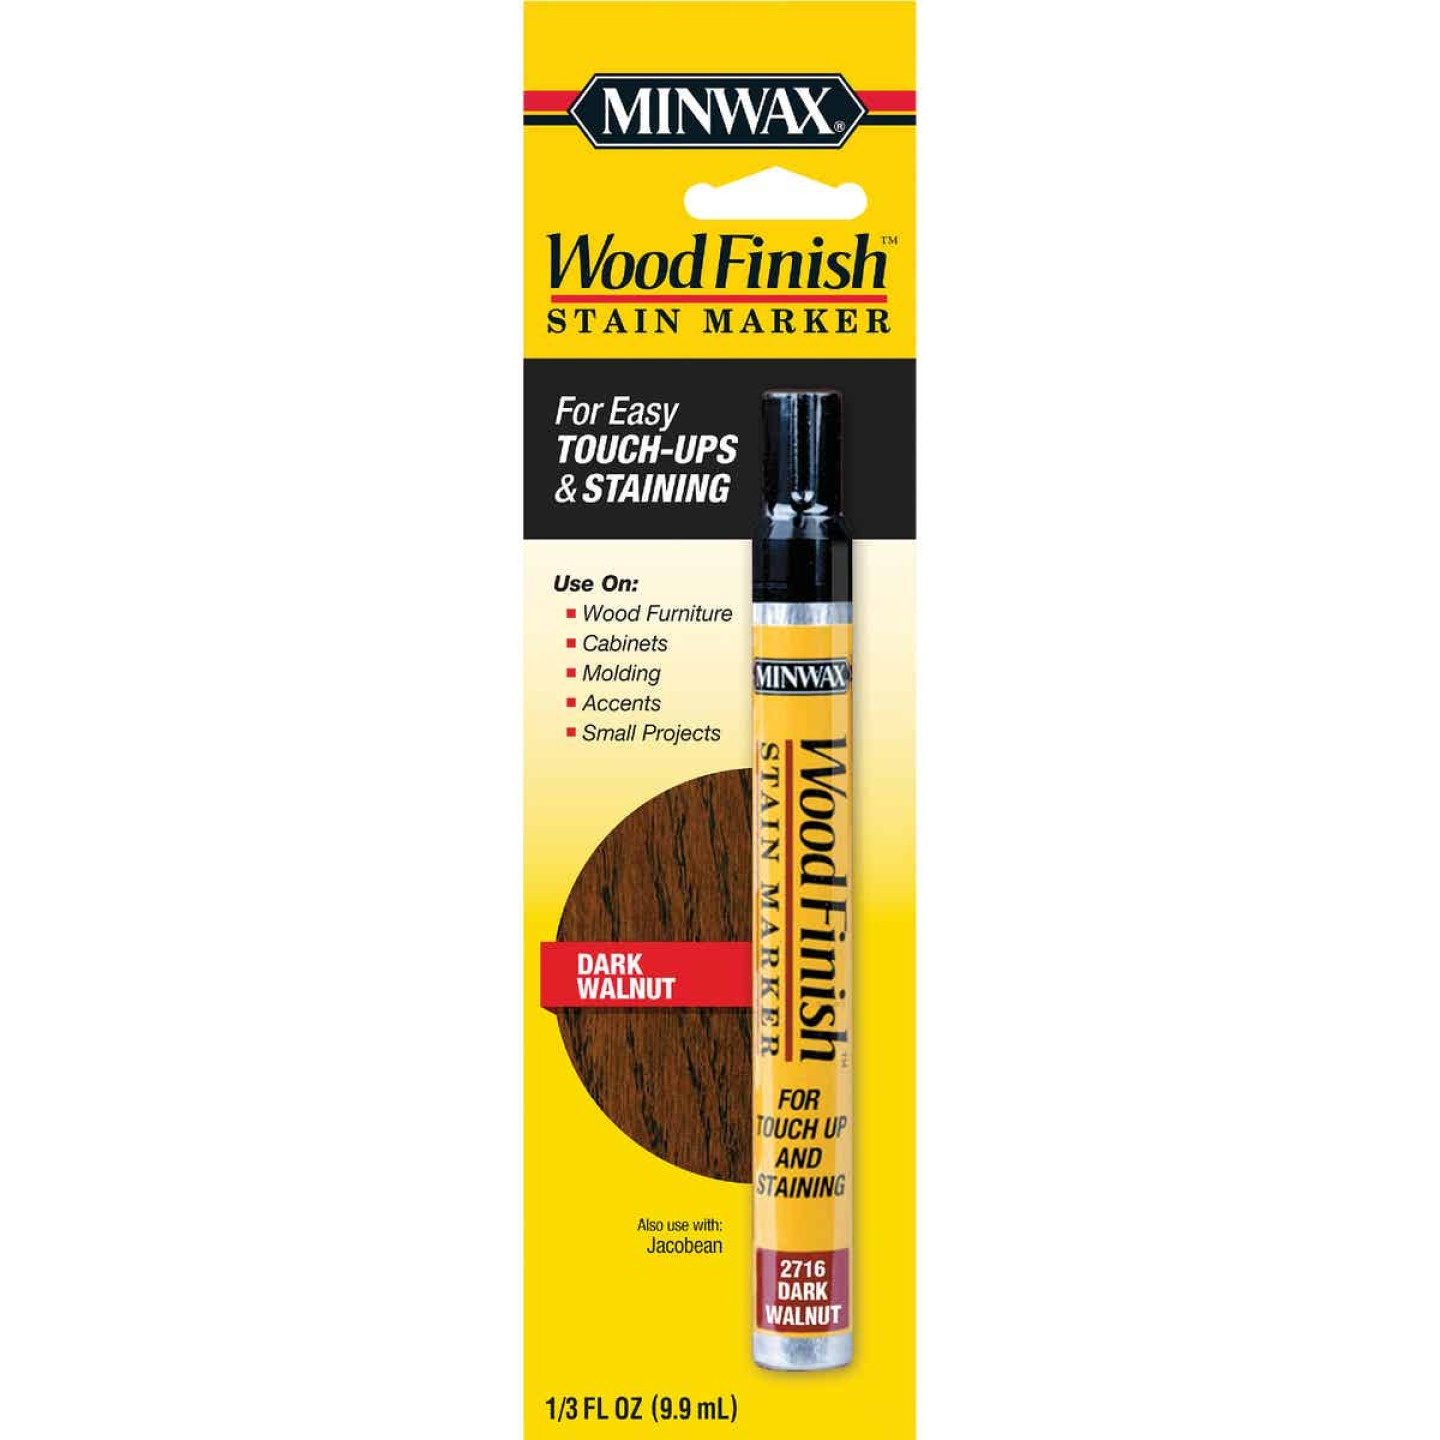 Minwax Wood Finish Dark Walnut Stain Marker Image 1